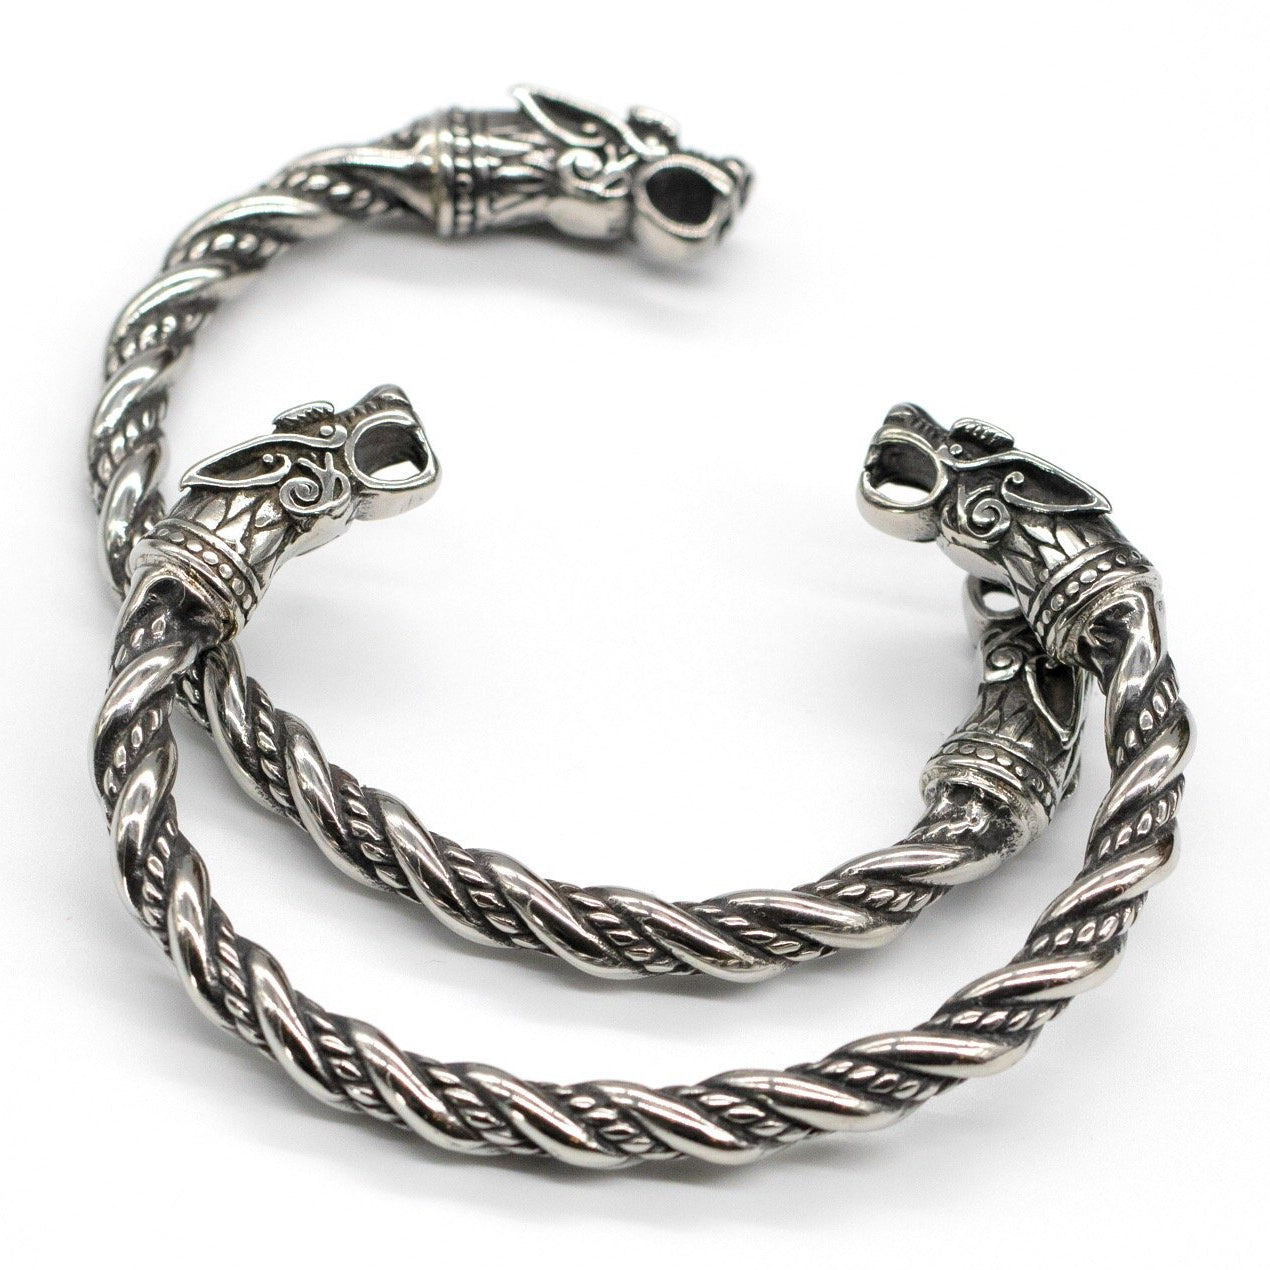 316L Stainless Steel Viking Fenrir Twisted Bangle Bracelet Arm Ring - VikingsBrand